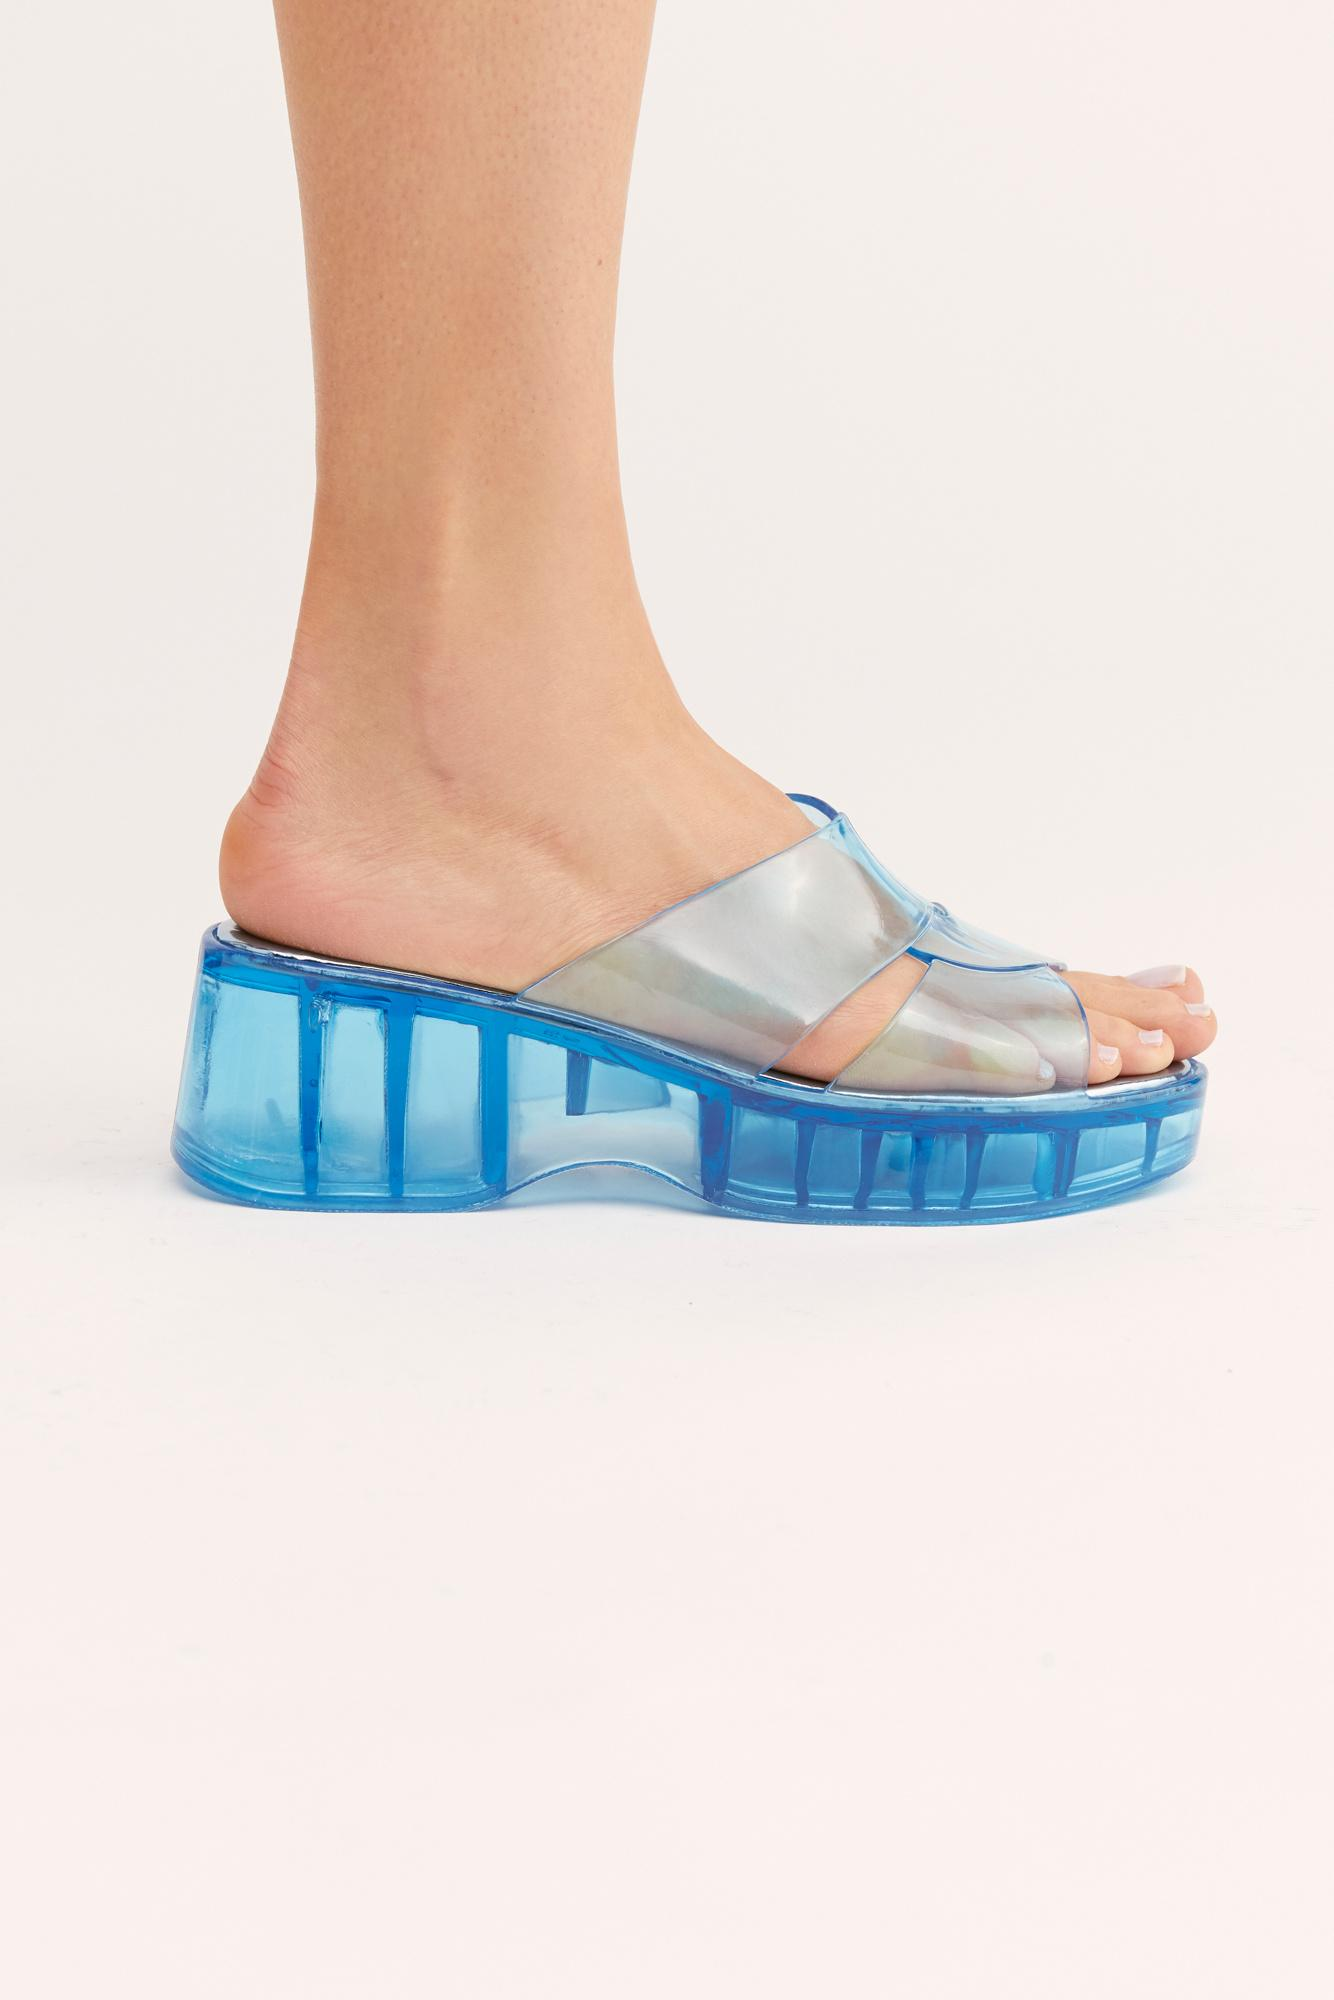 f4dae93cdfb1 Free People - Blue Wild Card Flatform Sandal By Jeffrey Campbell - Lyst.  View fullscreen